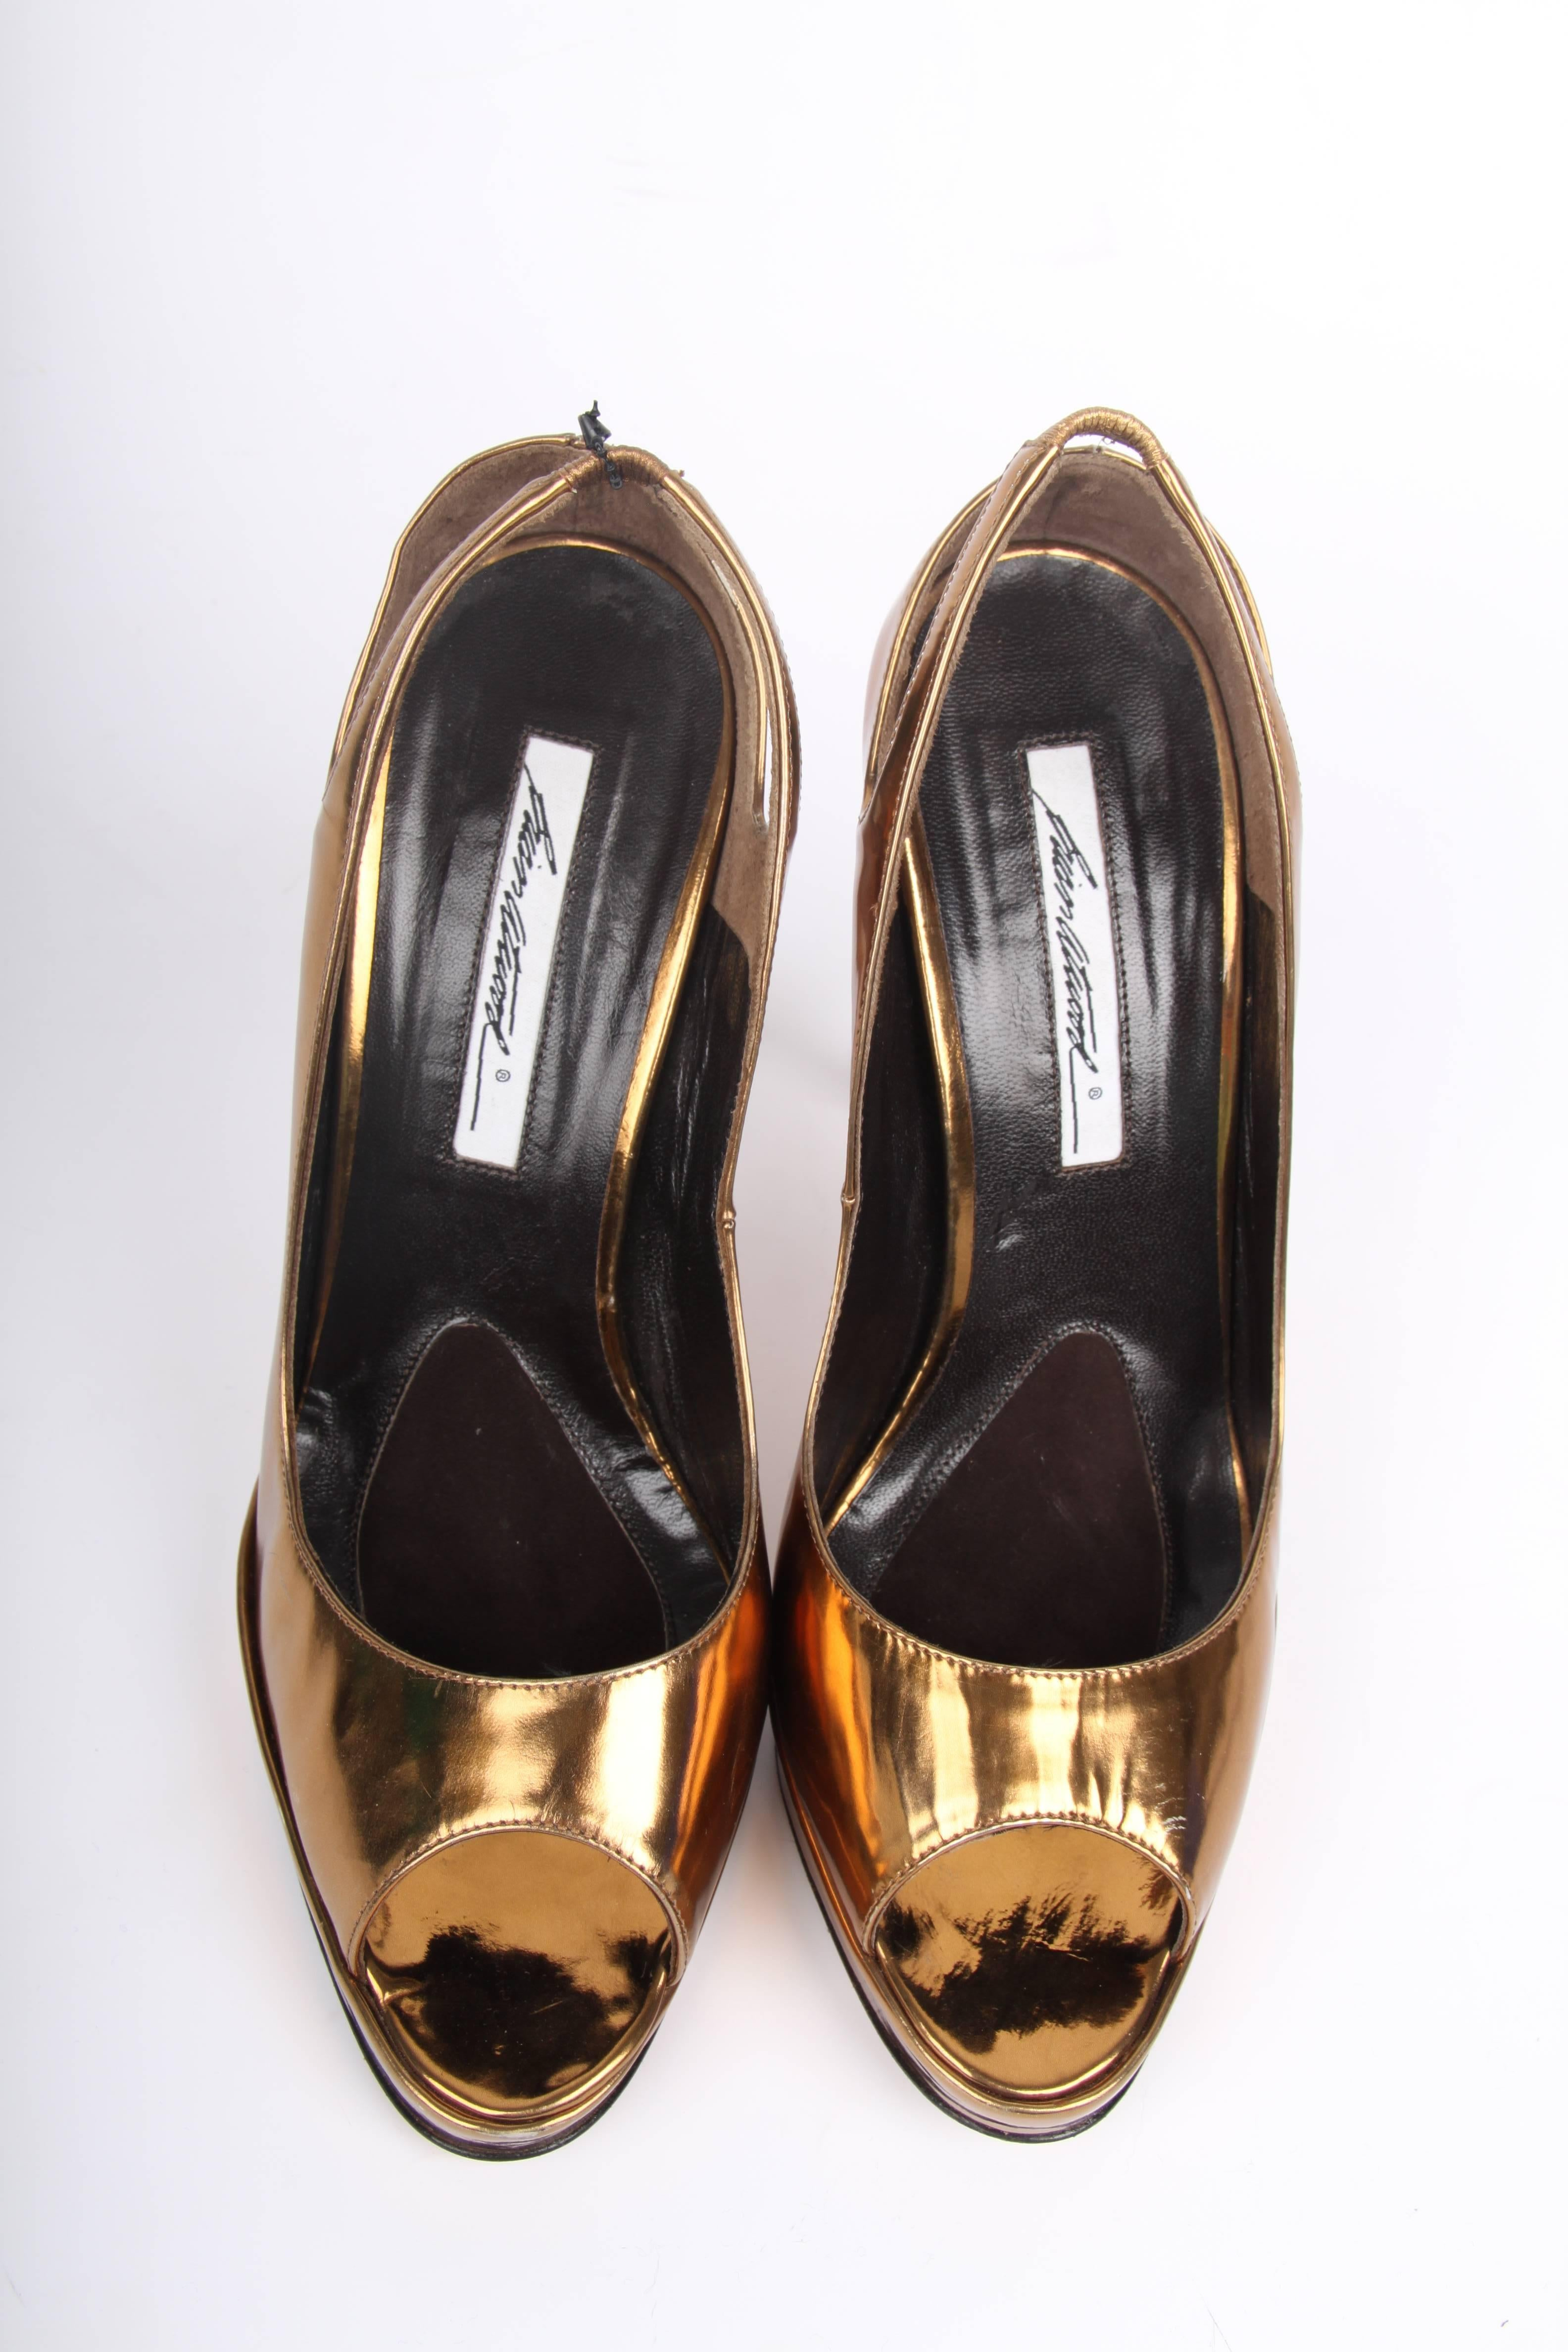 44d7a2977a Brian Atwood Peep Toe Pumps - metallic bronze leather For Sale at 1stdibs